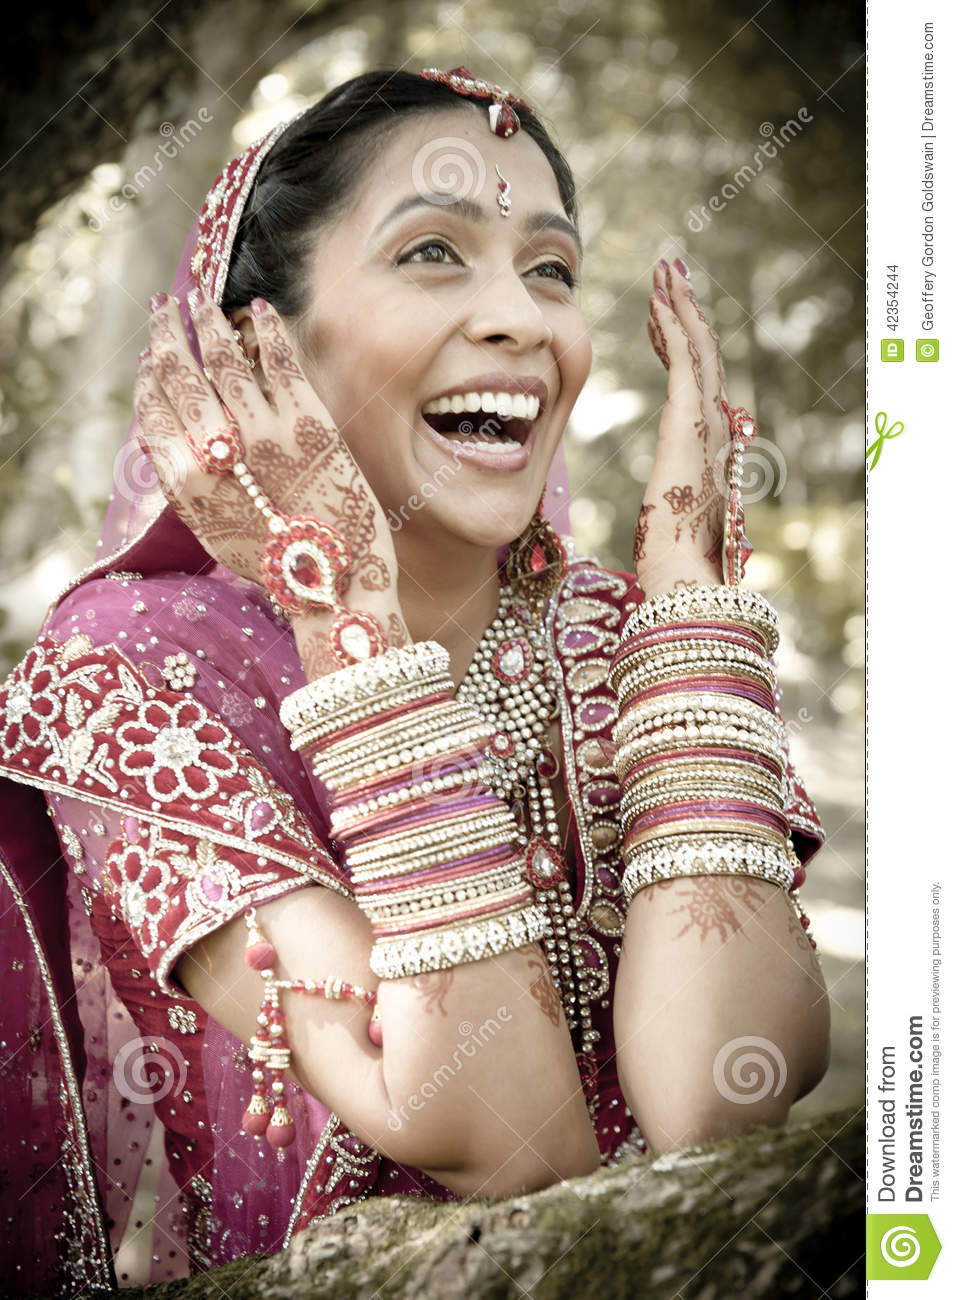 Young beautiful Indian Hindu bride laughing under tree with painted hands raised